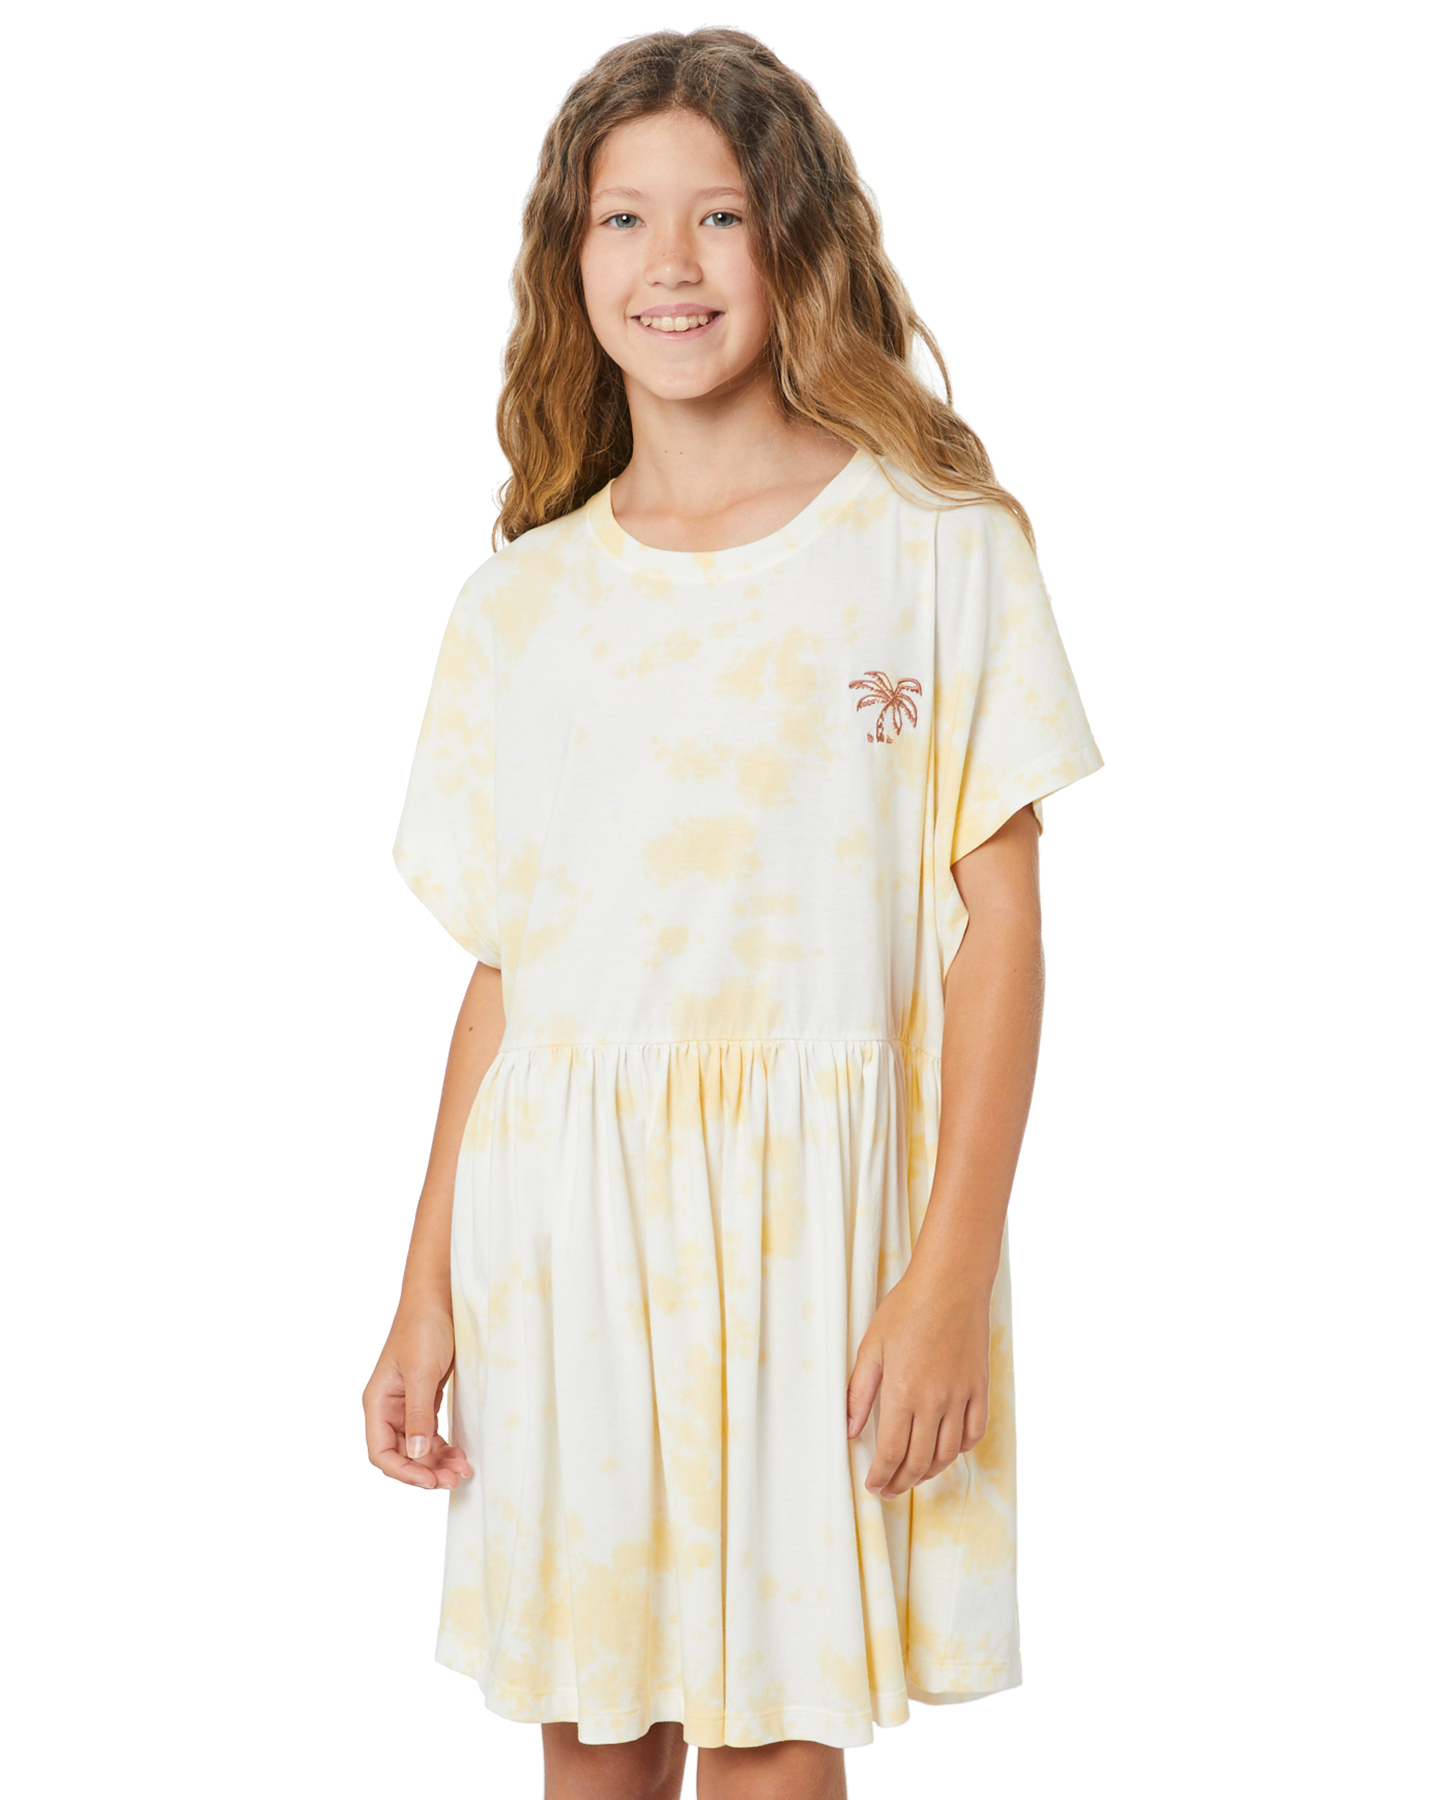 Munster Kids Girls Seas The Day Dress - Teen Lemon Tie Dye